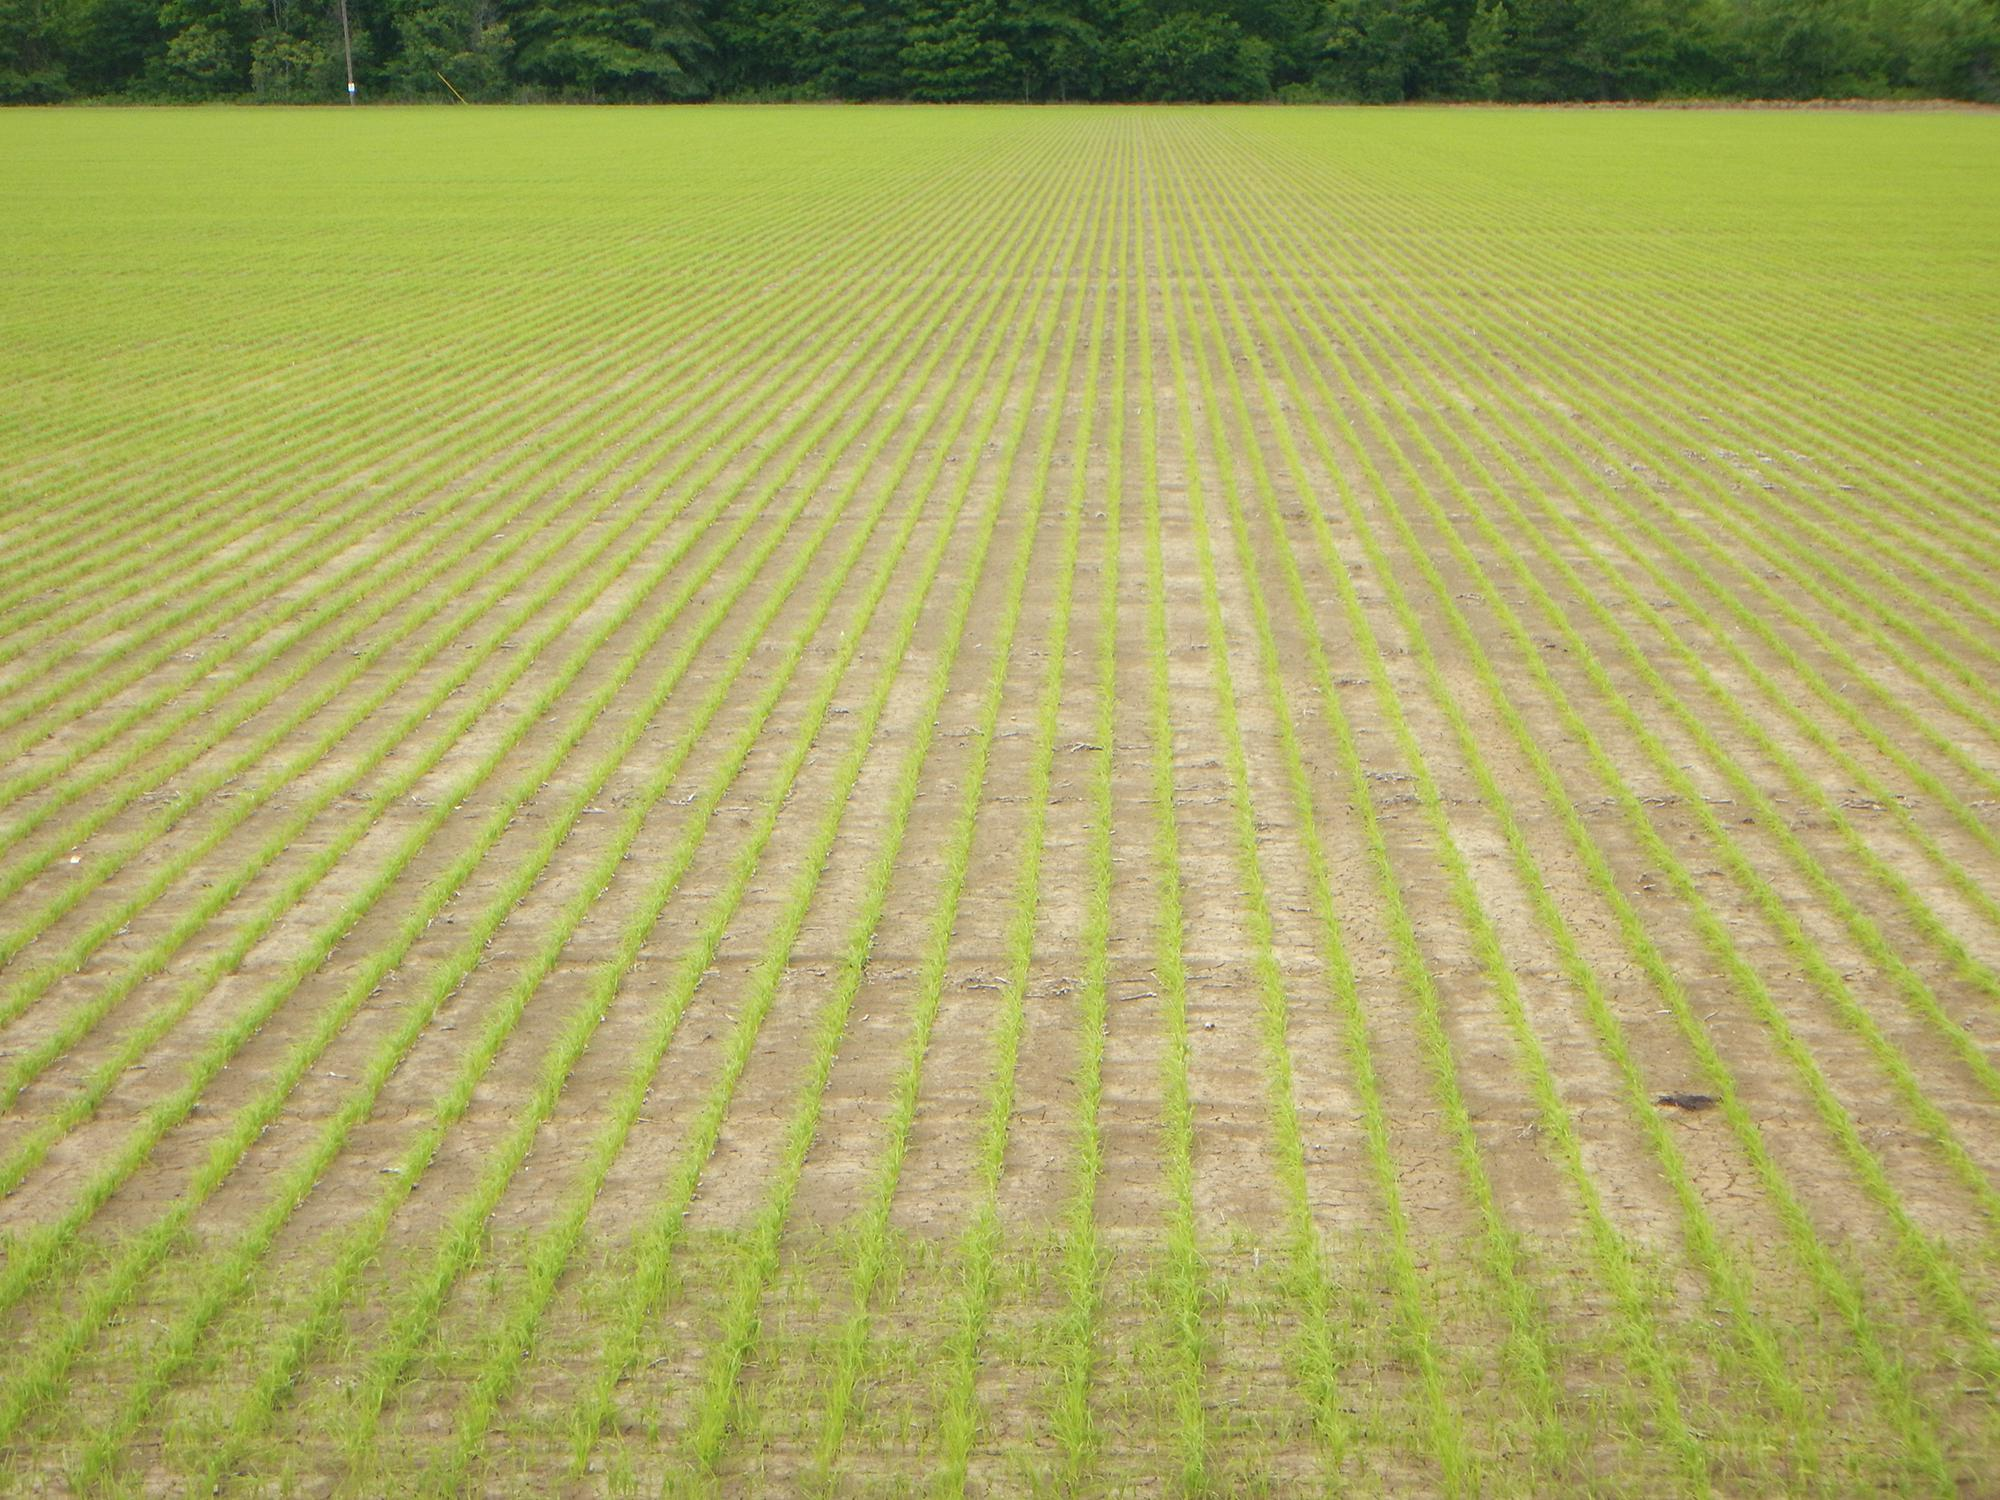 Although half the state's anticipated rice acreage was planted by late April, frequent rains have halted most planting in recent weeks. This rice field in Washington County, Mississippi, was photographed April 28, 2015. (Photo by Mississippi Agricultural and Forestry Experiment Station/Richard Turner)